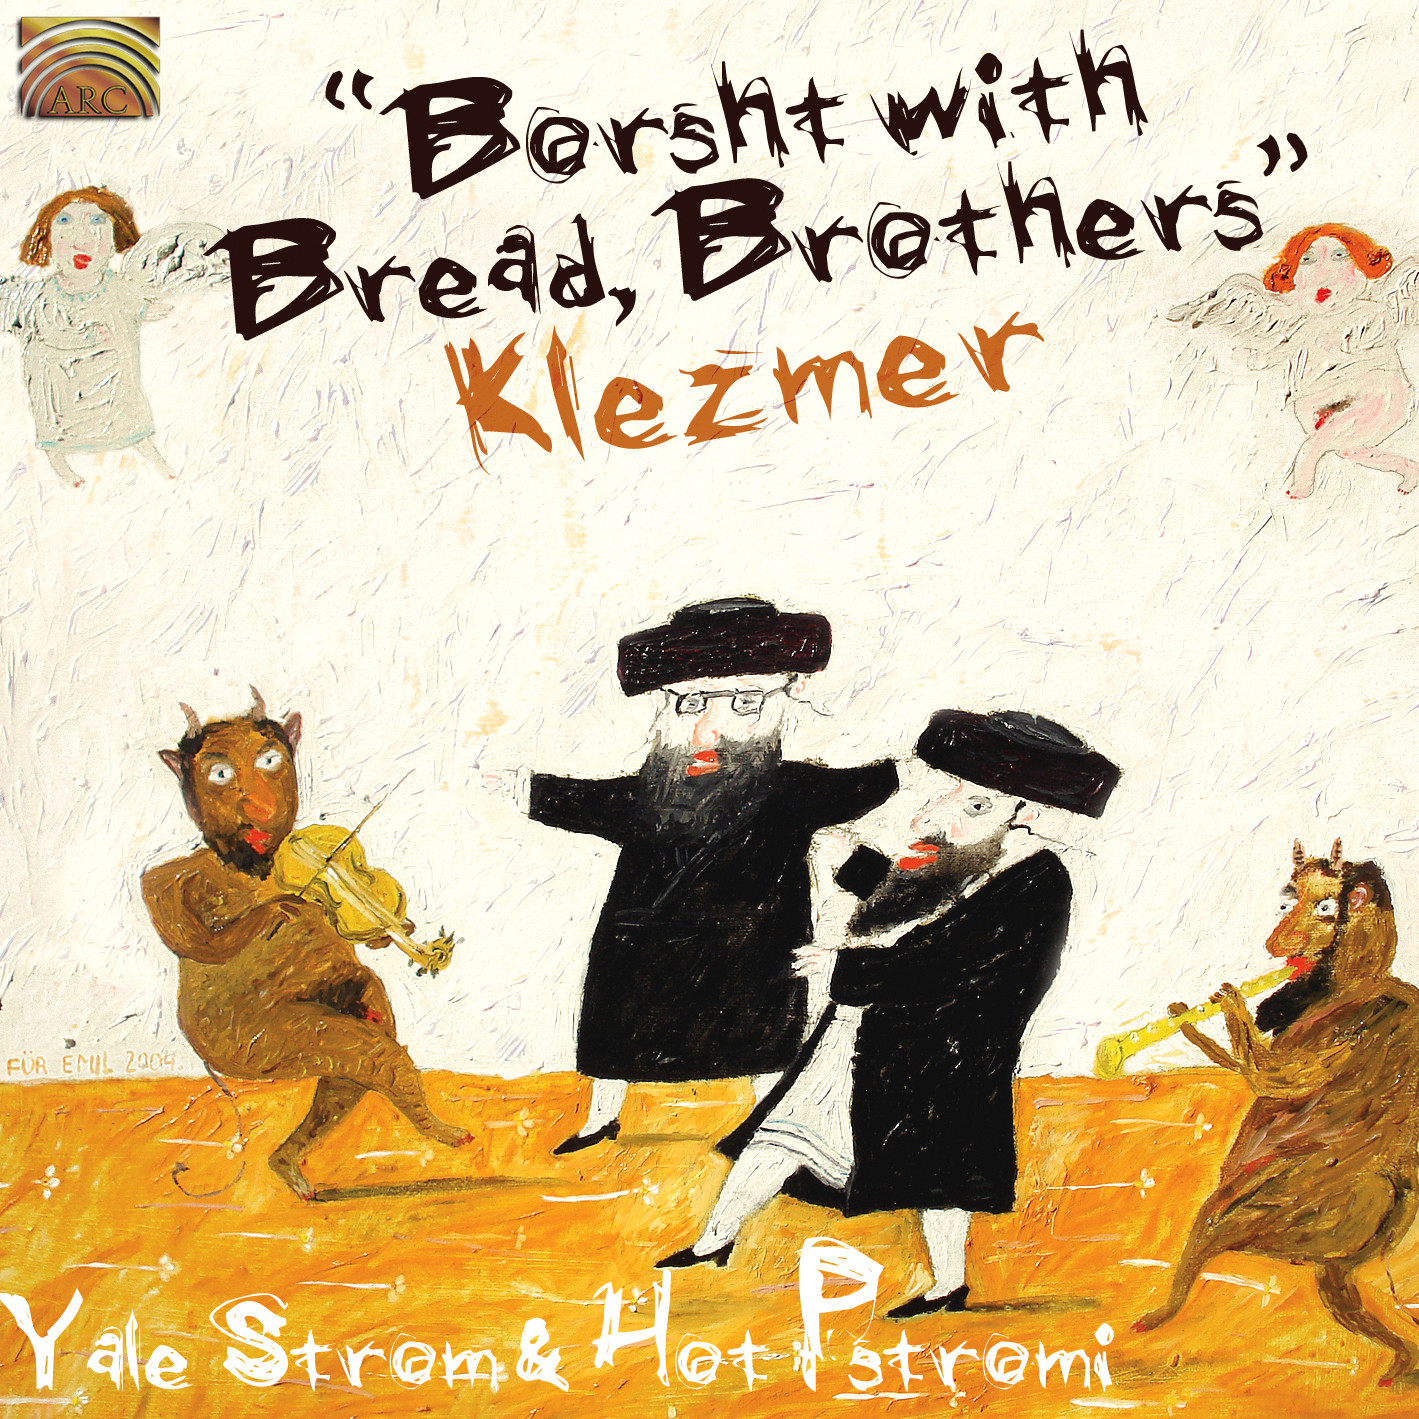 EUCD2102 Borsht with Bread, Brothers - Klezmer